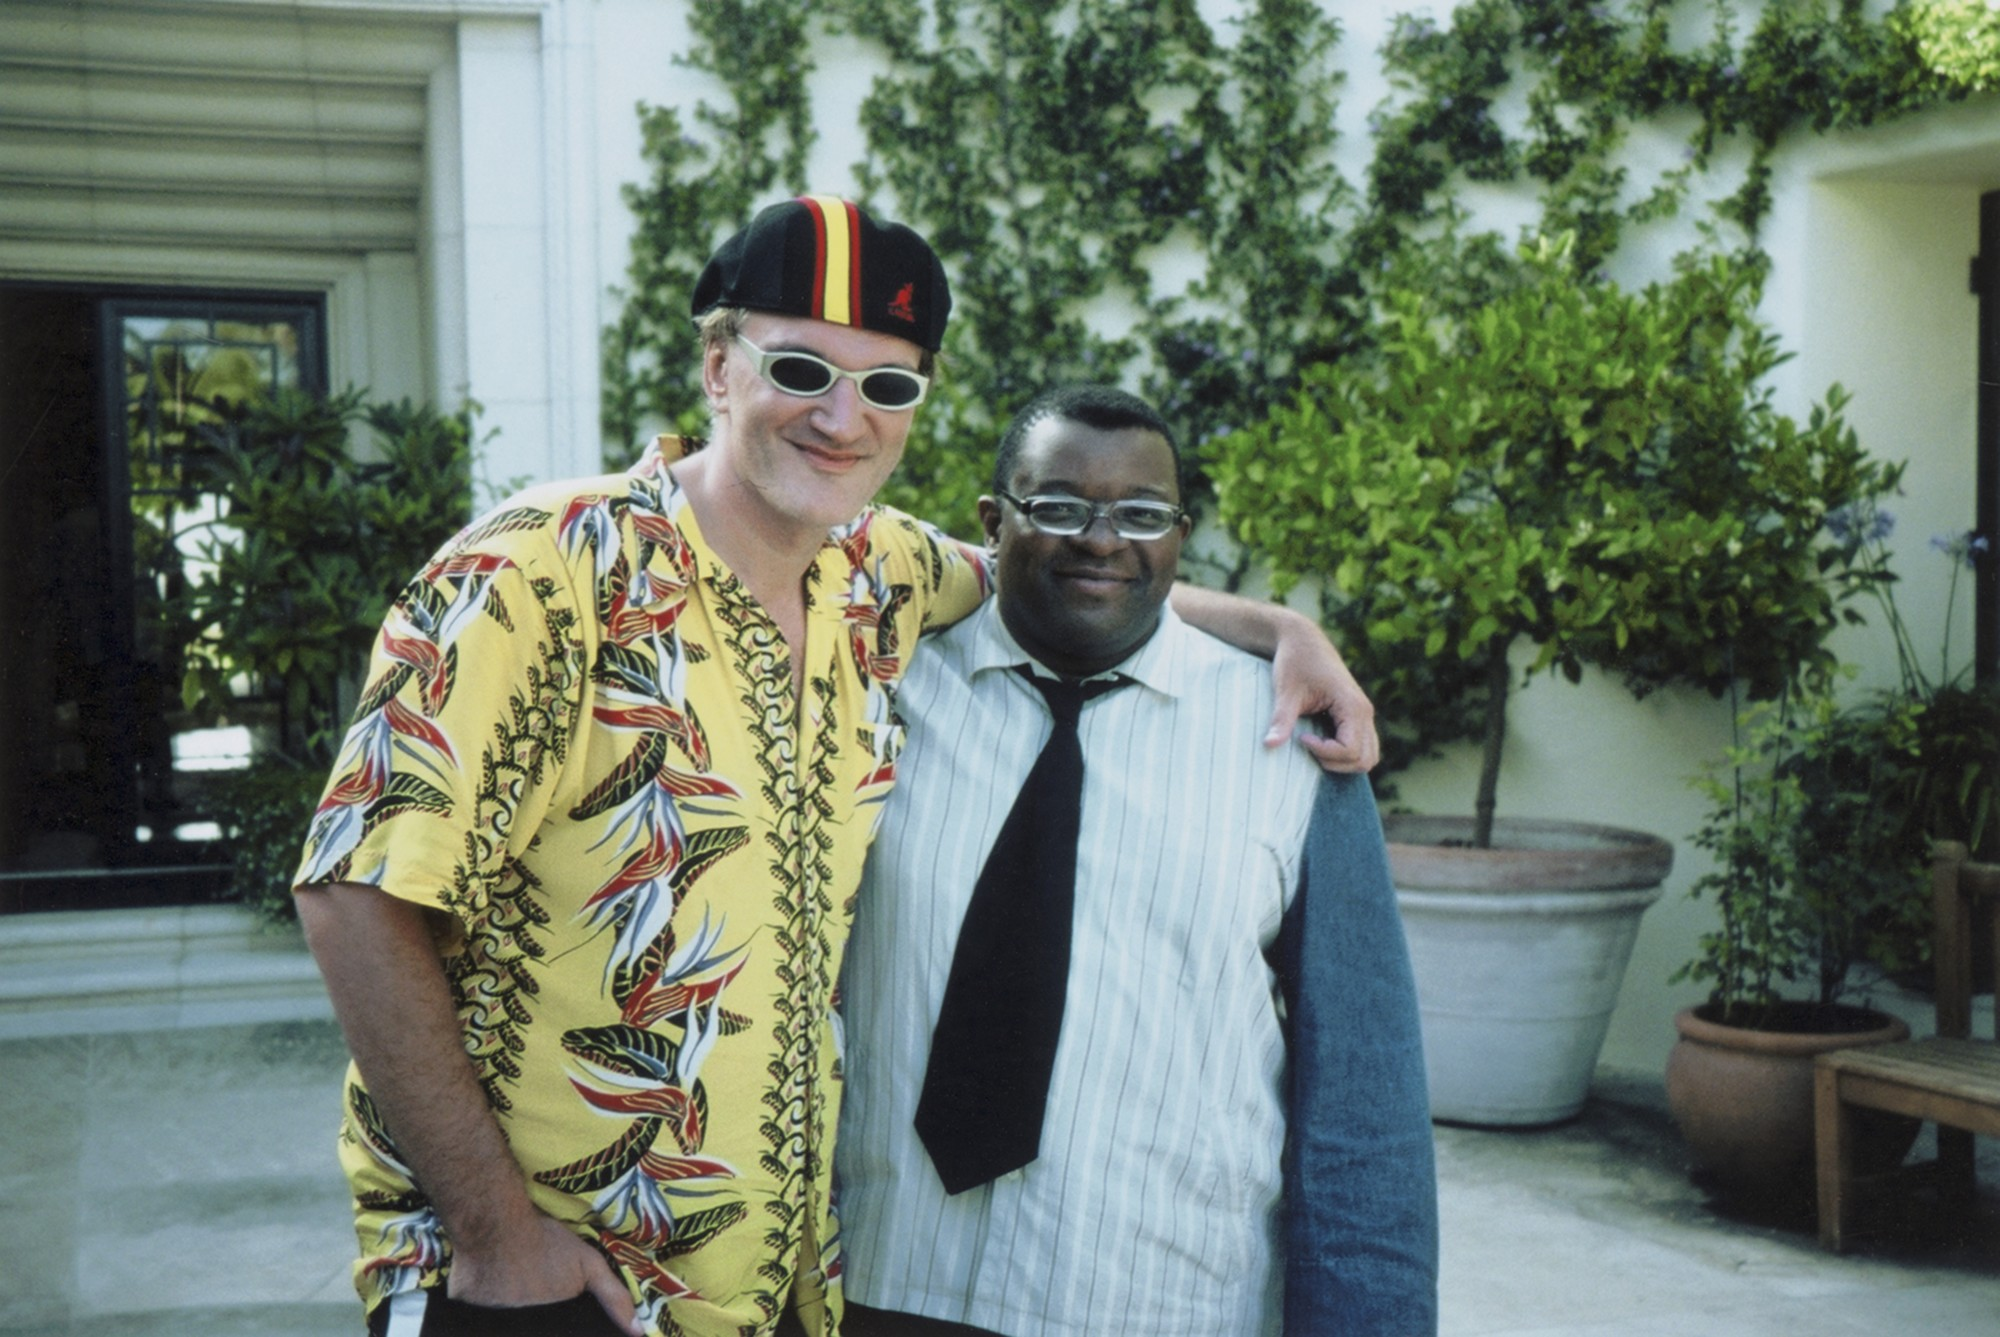 Isaac Julien and Quentin Tarantino on BaadAsssss Cinema film set